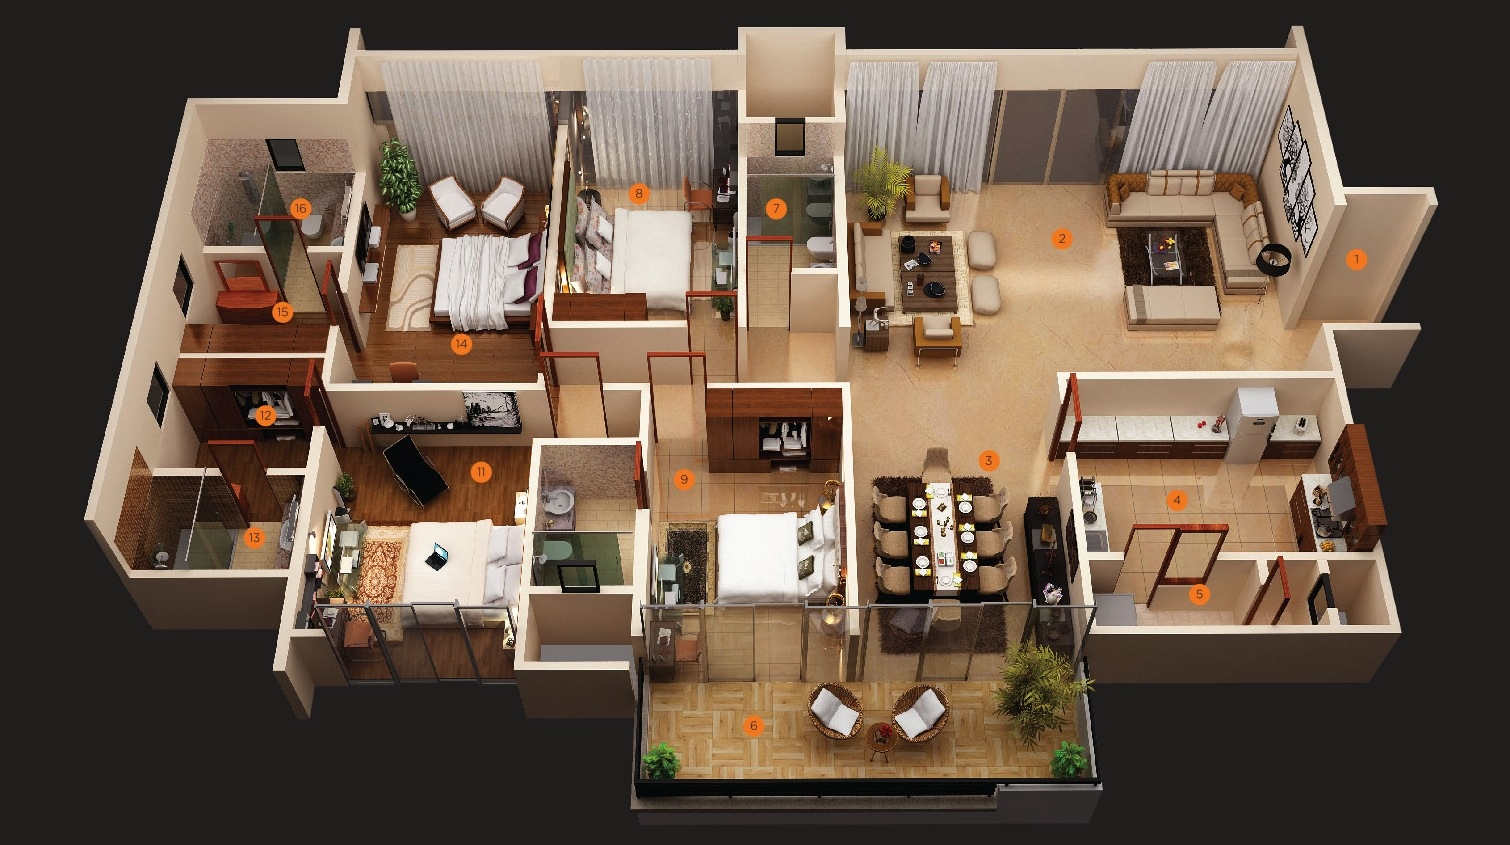 Modern 4 bedroom house plans decor units for Plan my bedroom design